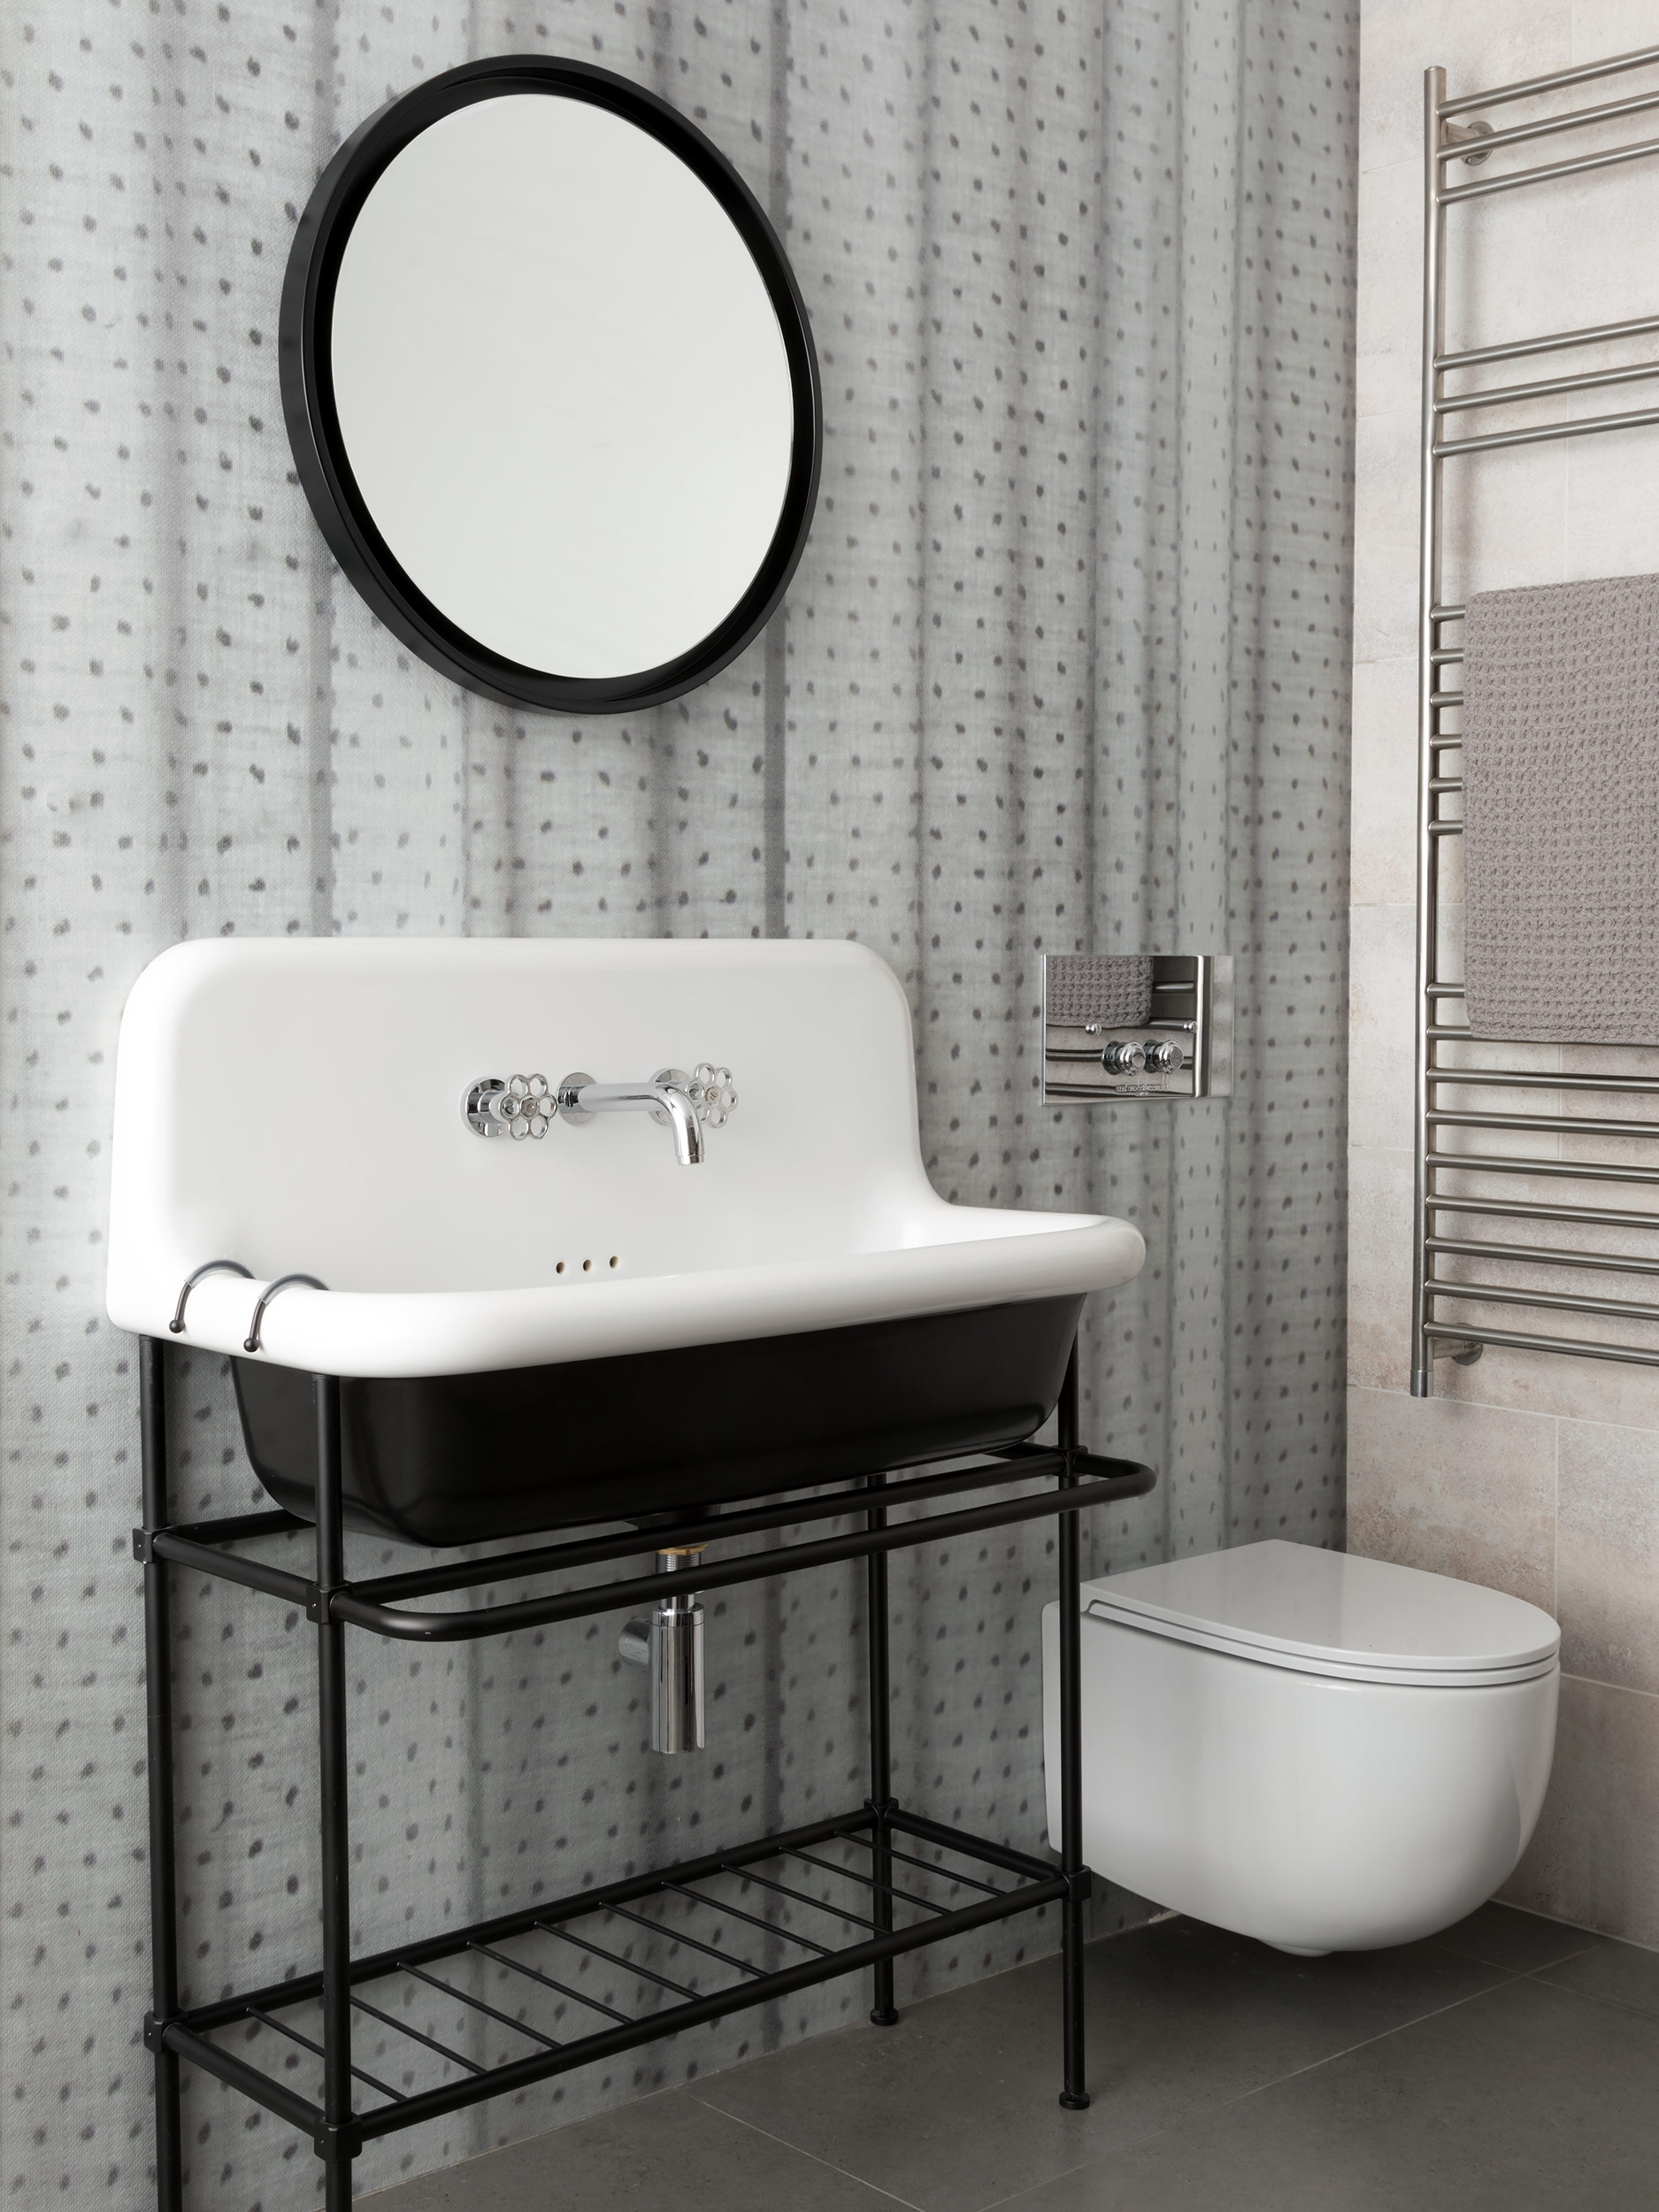 West One Bathrooms Oxshott Showroom Surrey 5a